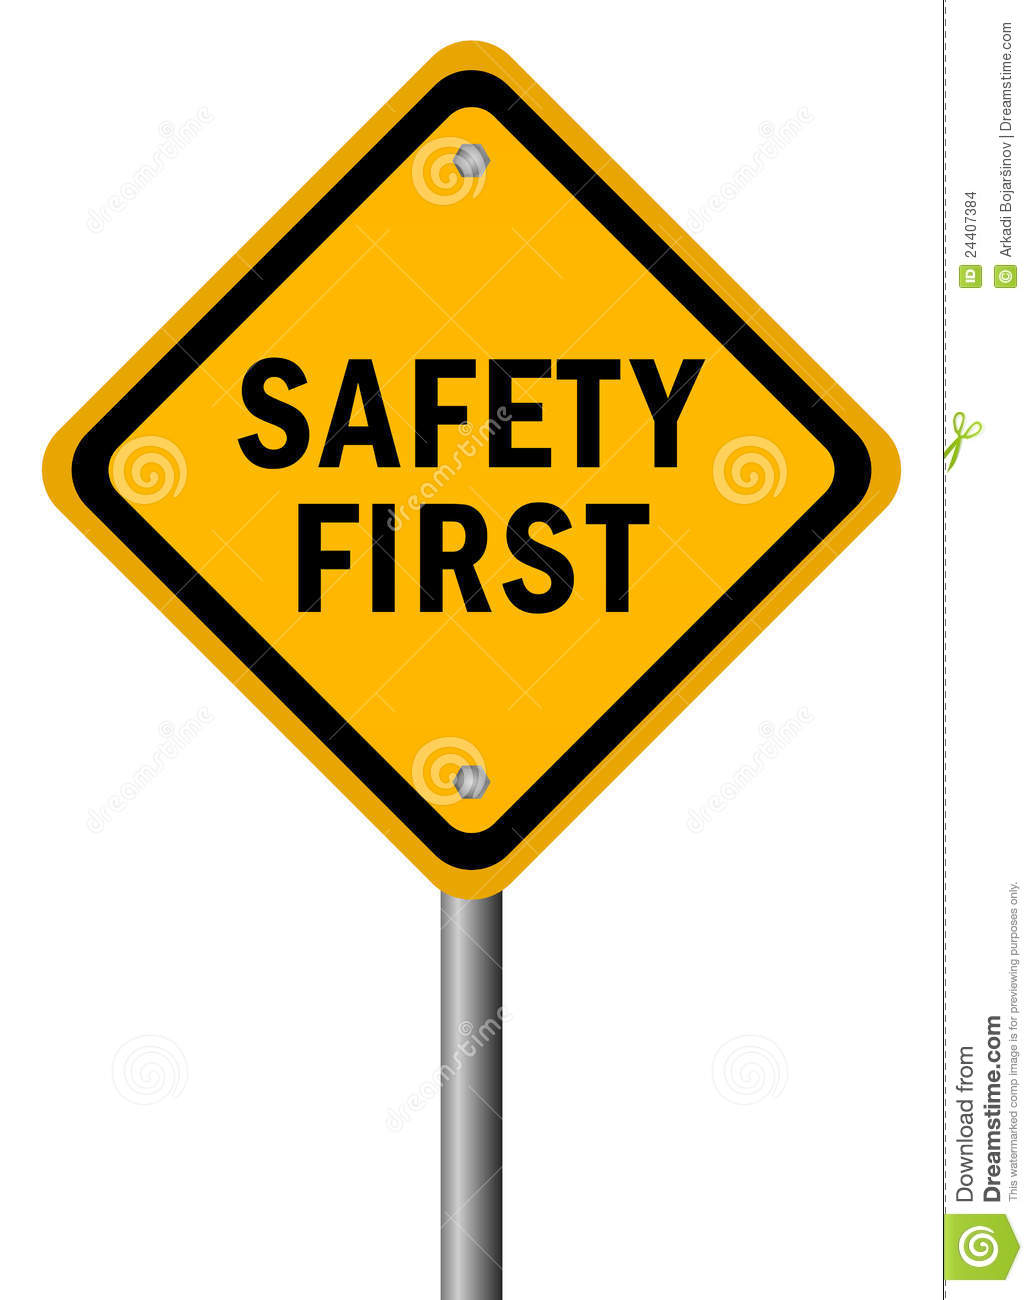 Safety First Clipart Safety First Sign-Safety First Clipart Safety First Sign-11